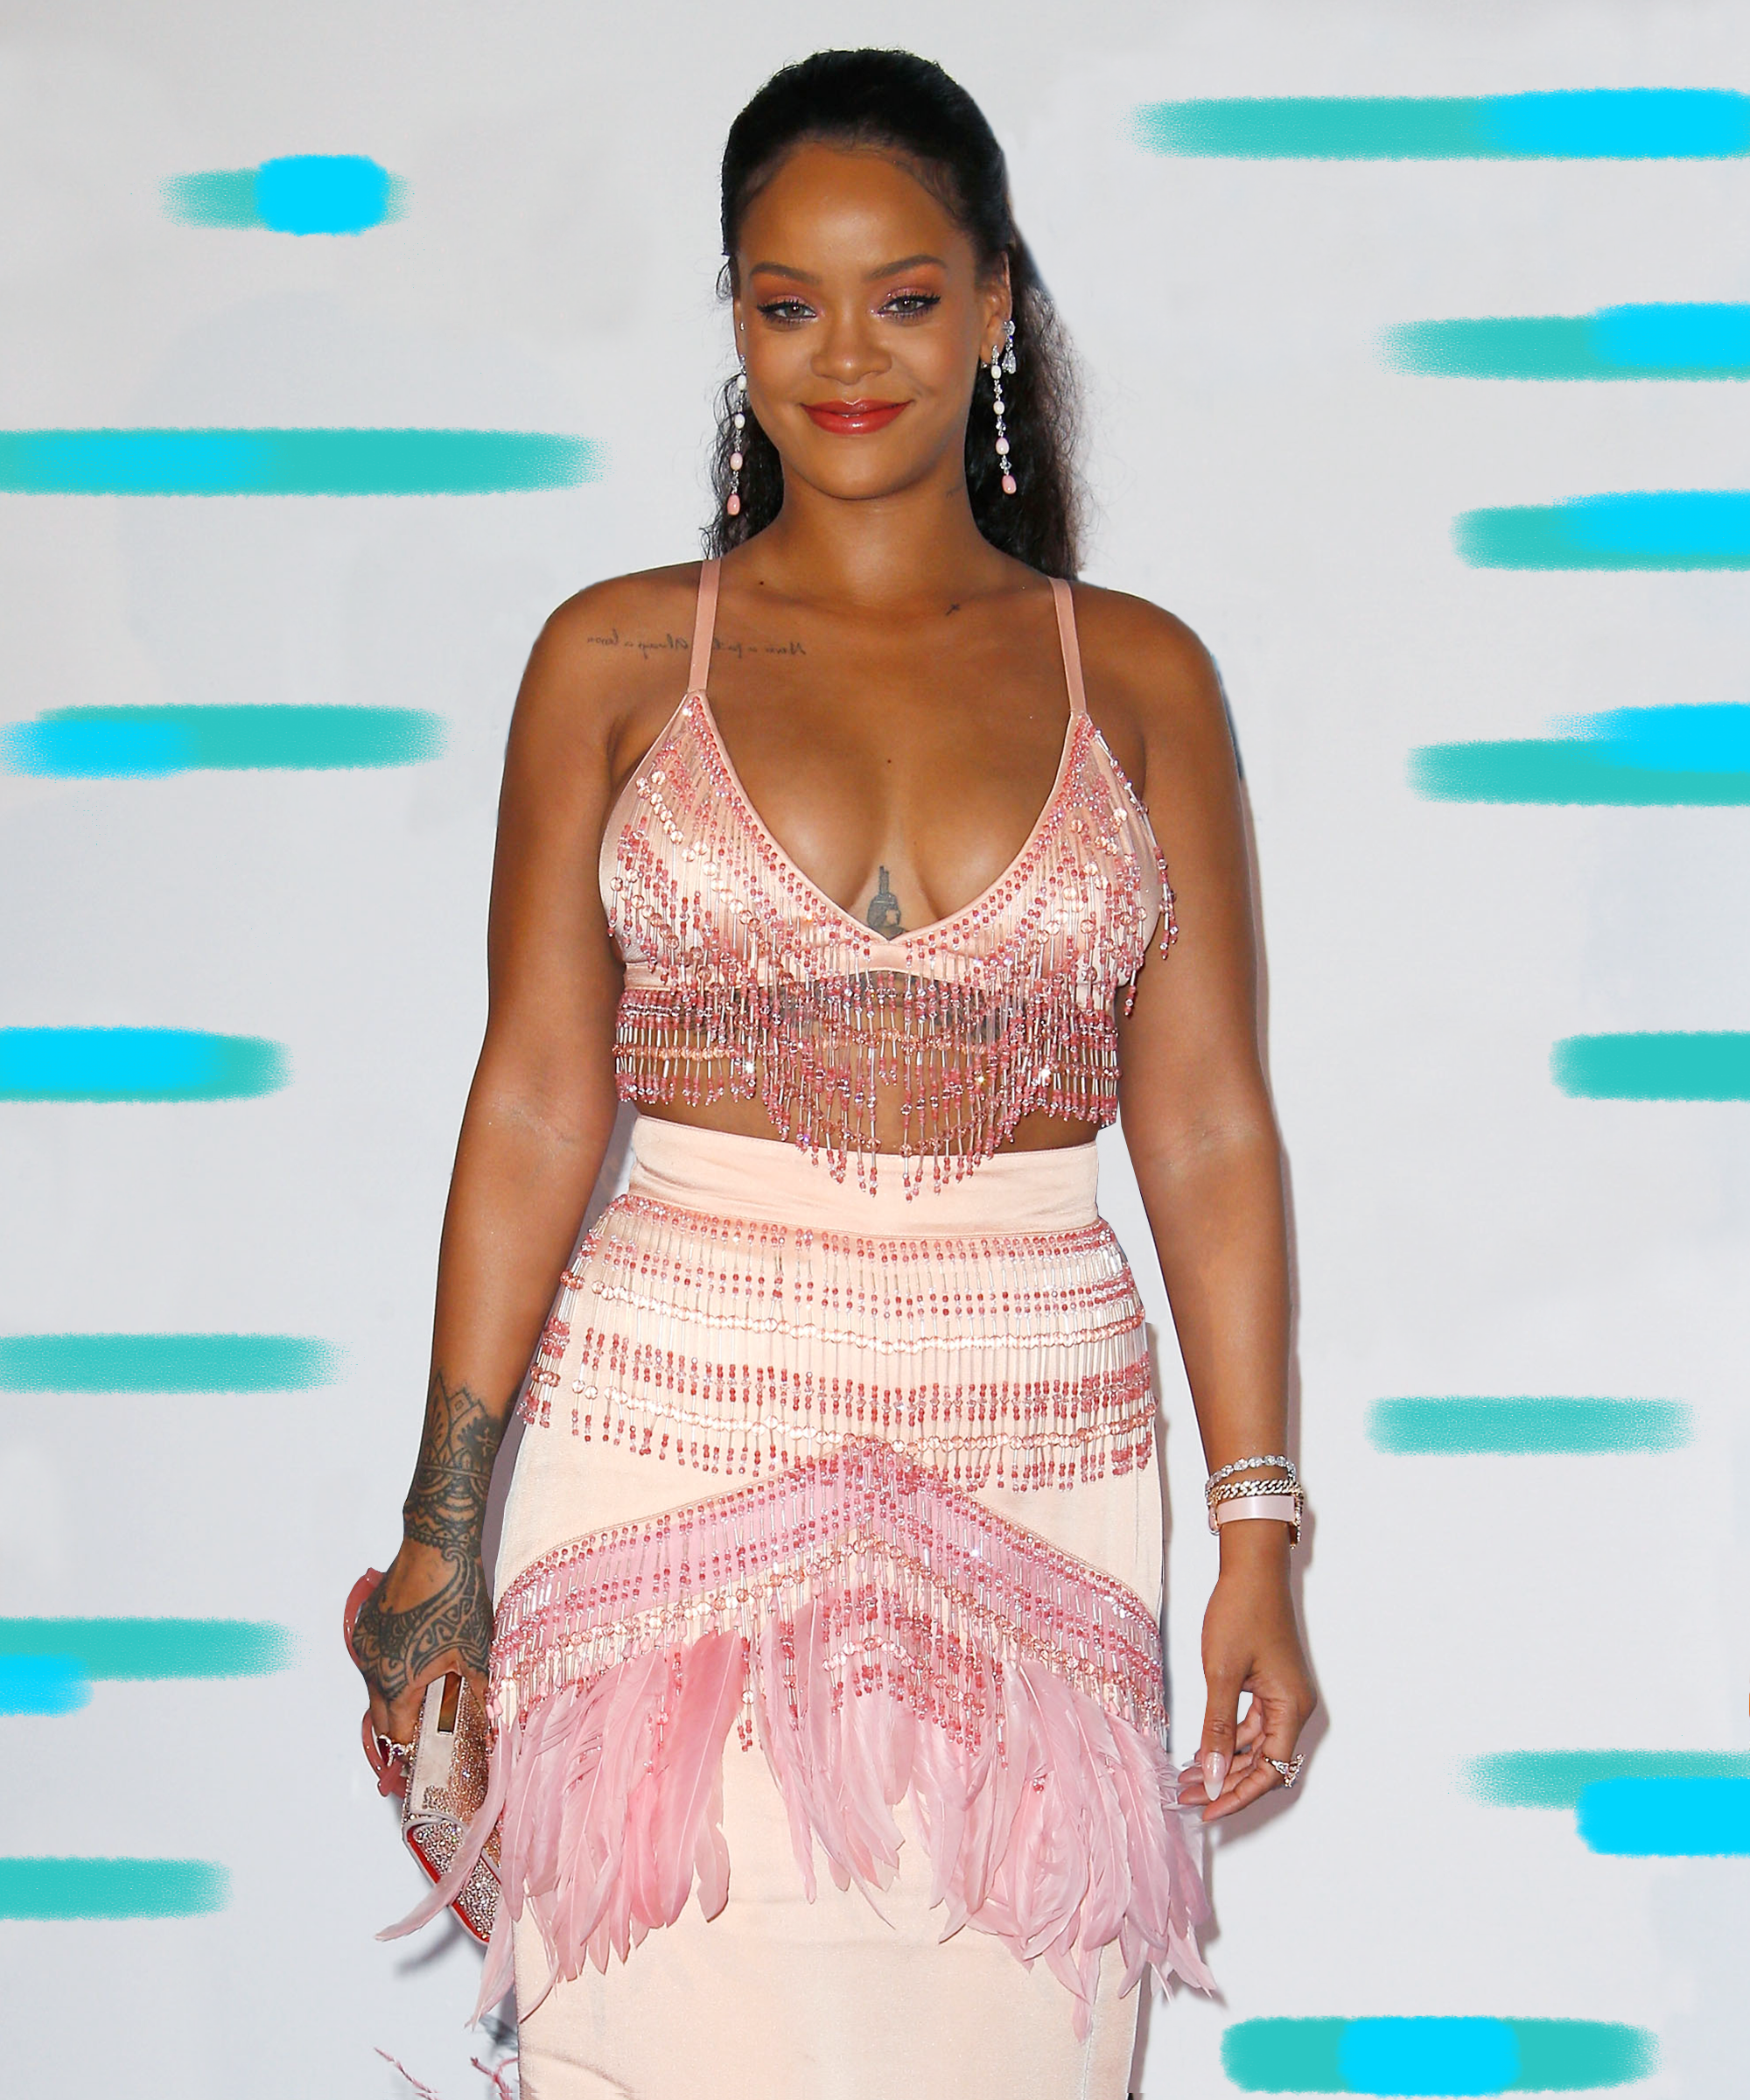 f4ee24afbeb44 Rihanna Naked Outfit Sequin Bra Funny Tweets Crop Over